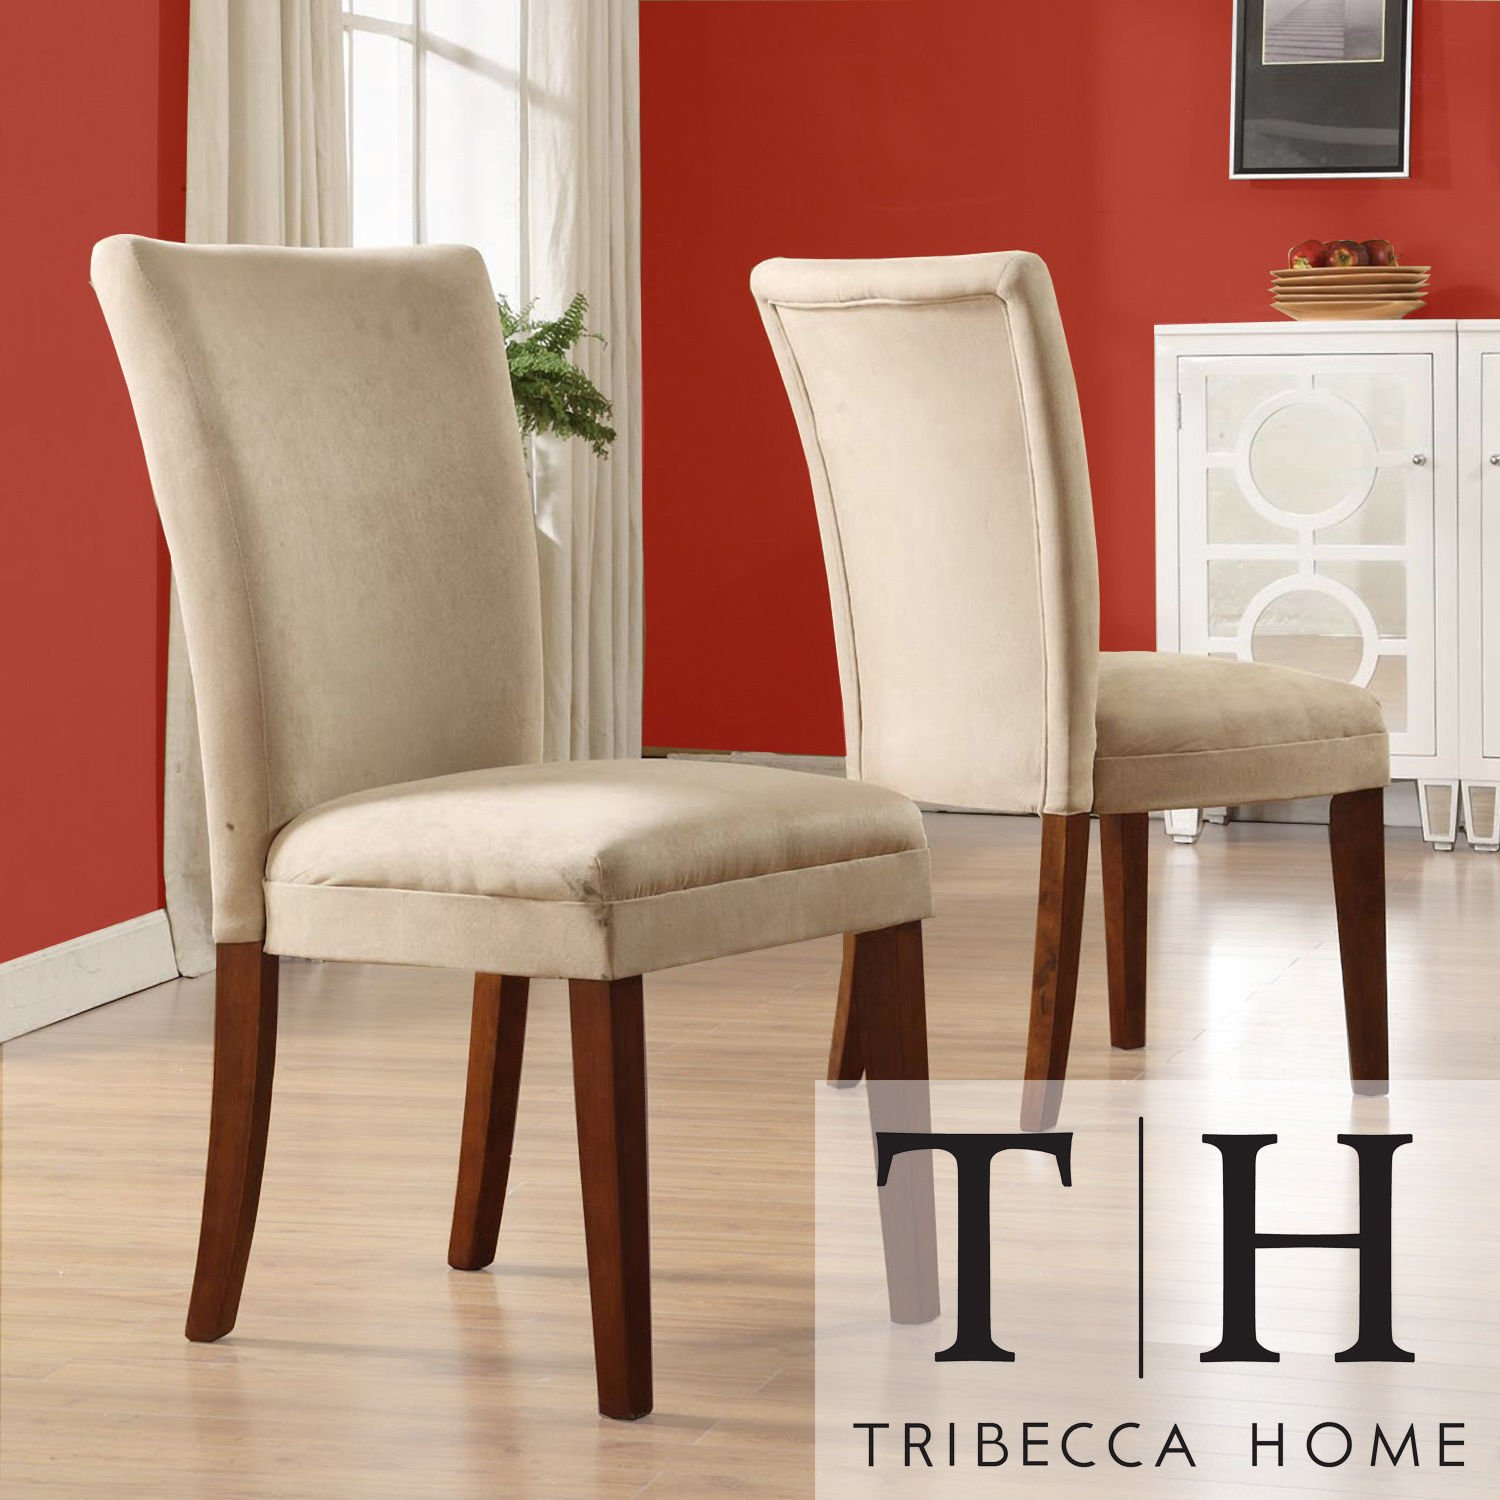 Metro Shop TRIBECCA HOME Parson Classic Peat Microfiber Side Chairs (Set of 2) by Metro Shop Home Decor